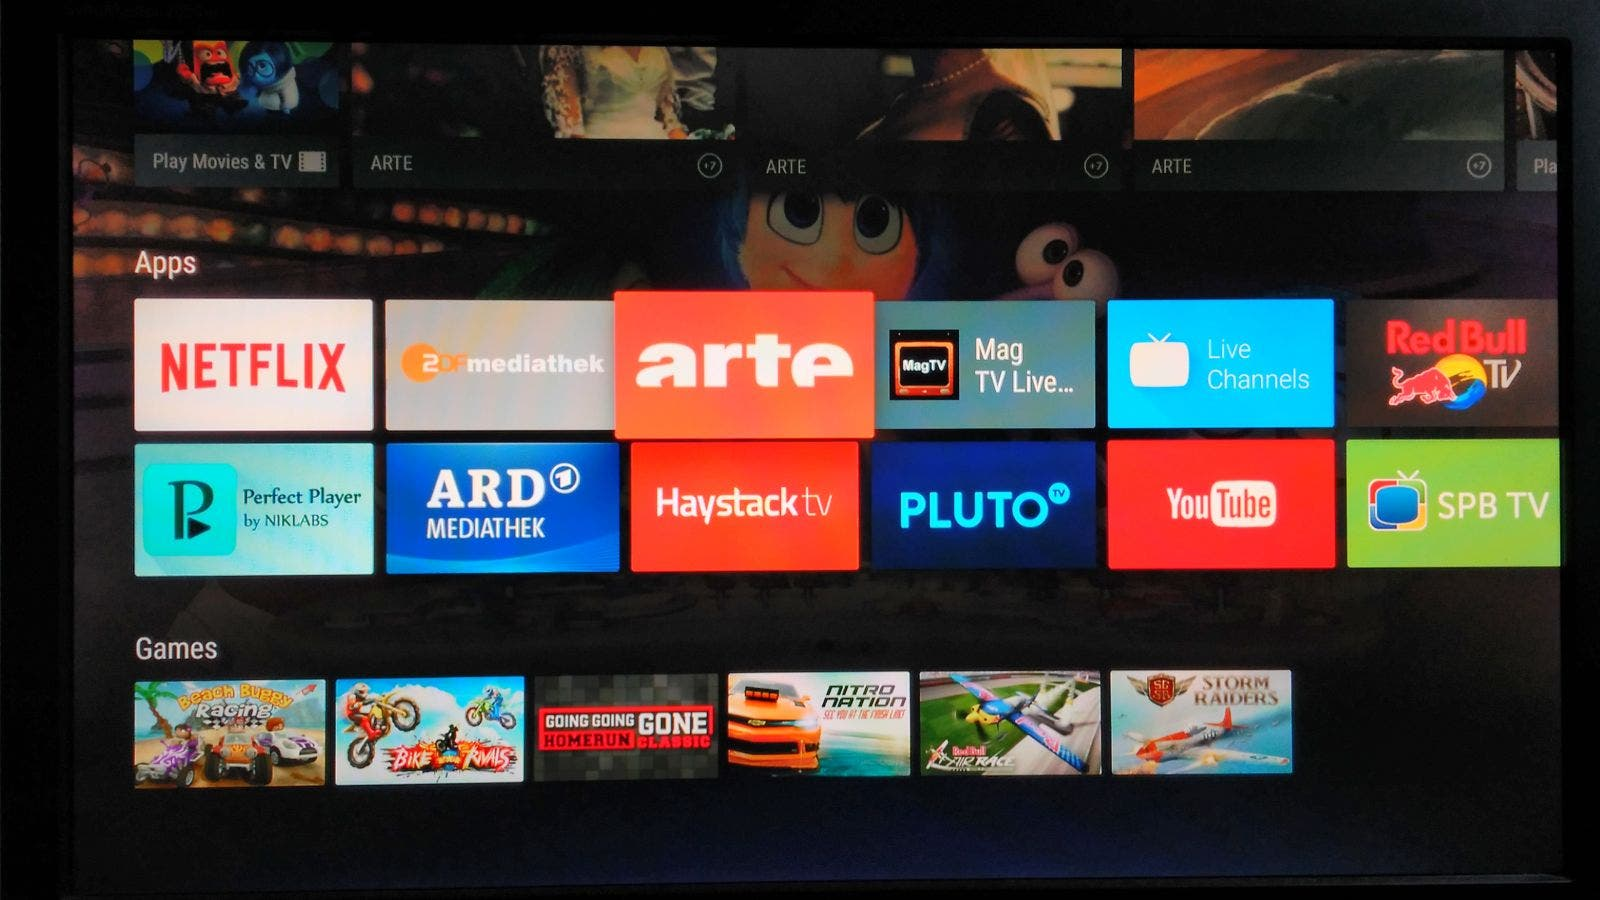 Android-TV-Homescreen-1.jpg